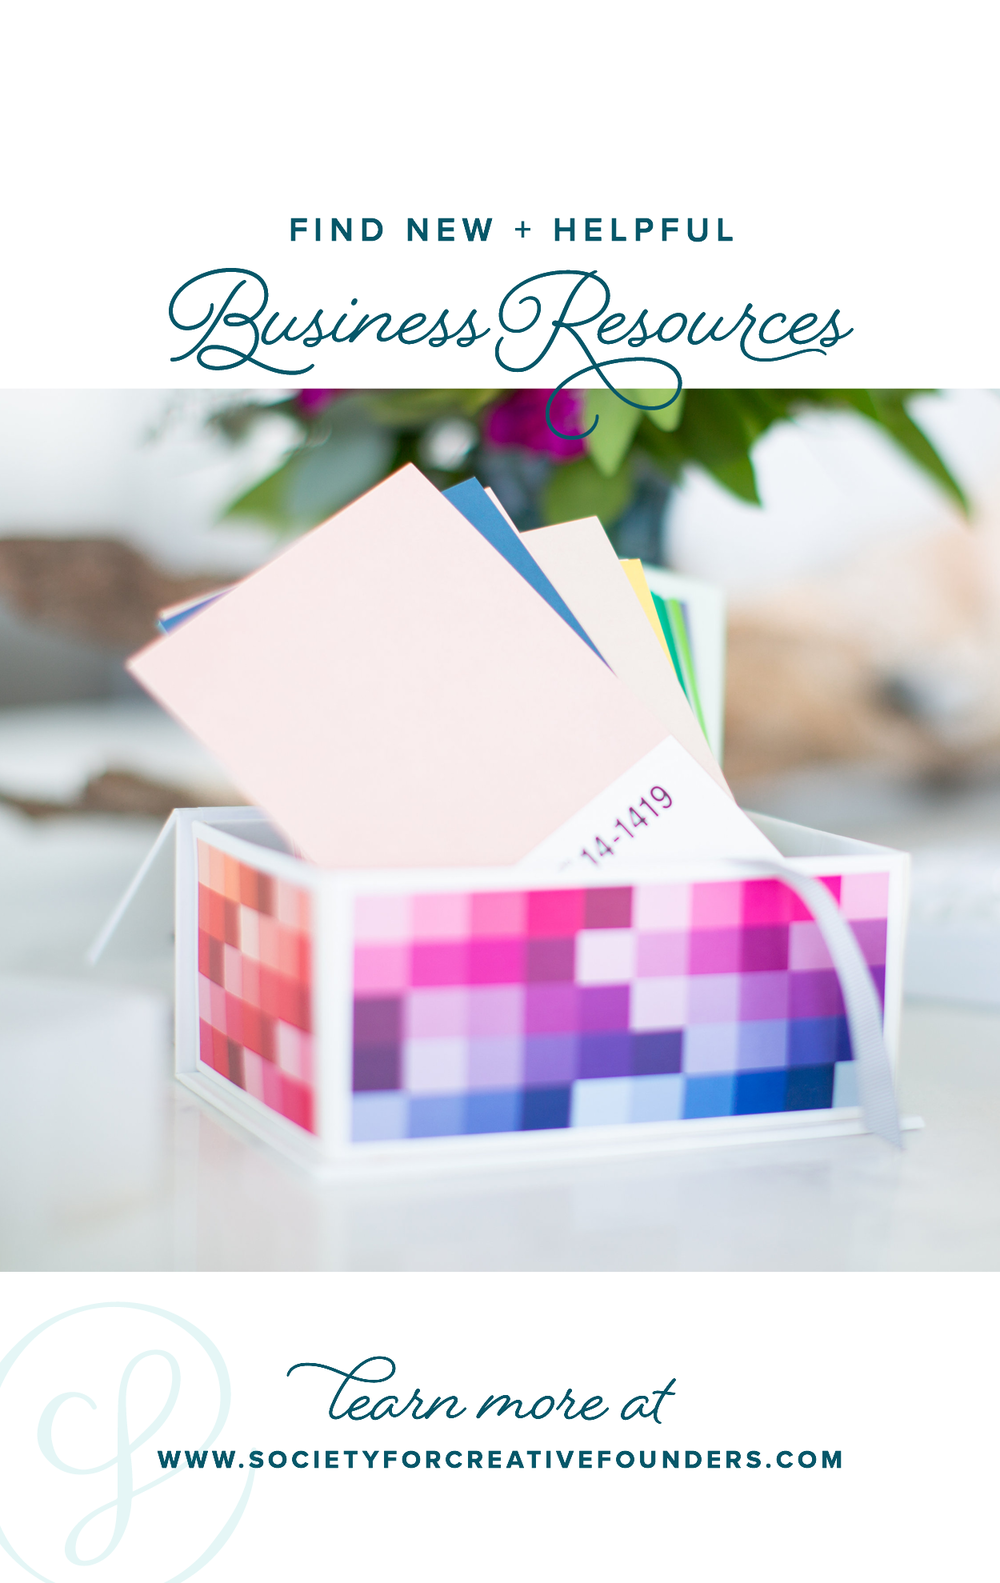 Business Resources at the Society for Creative Founders